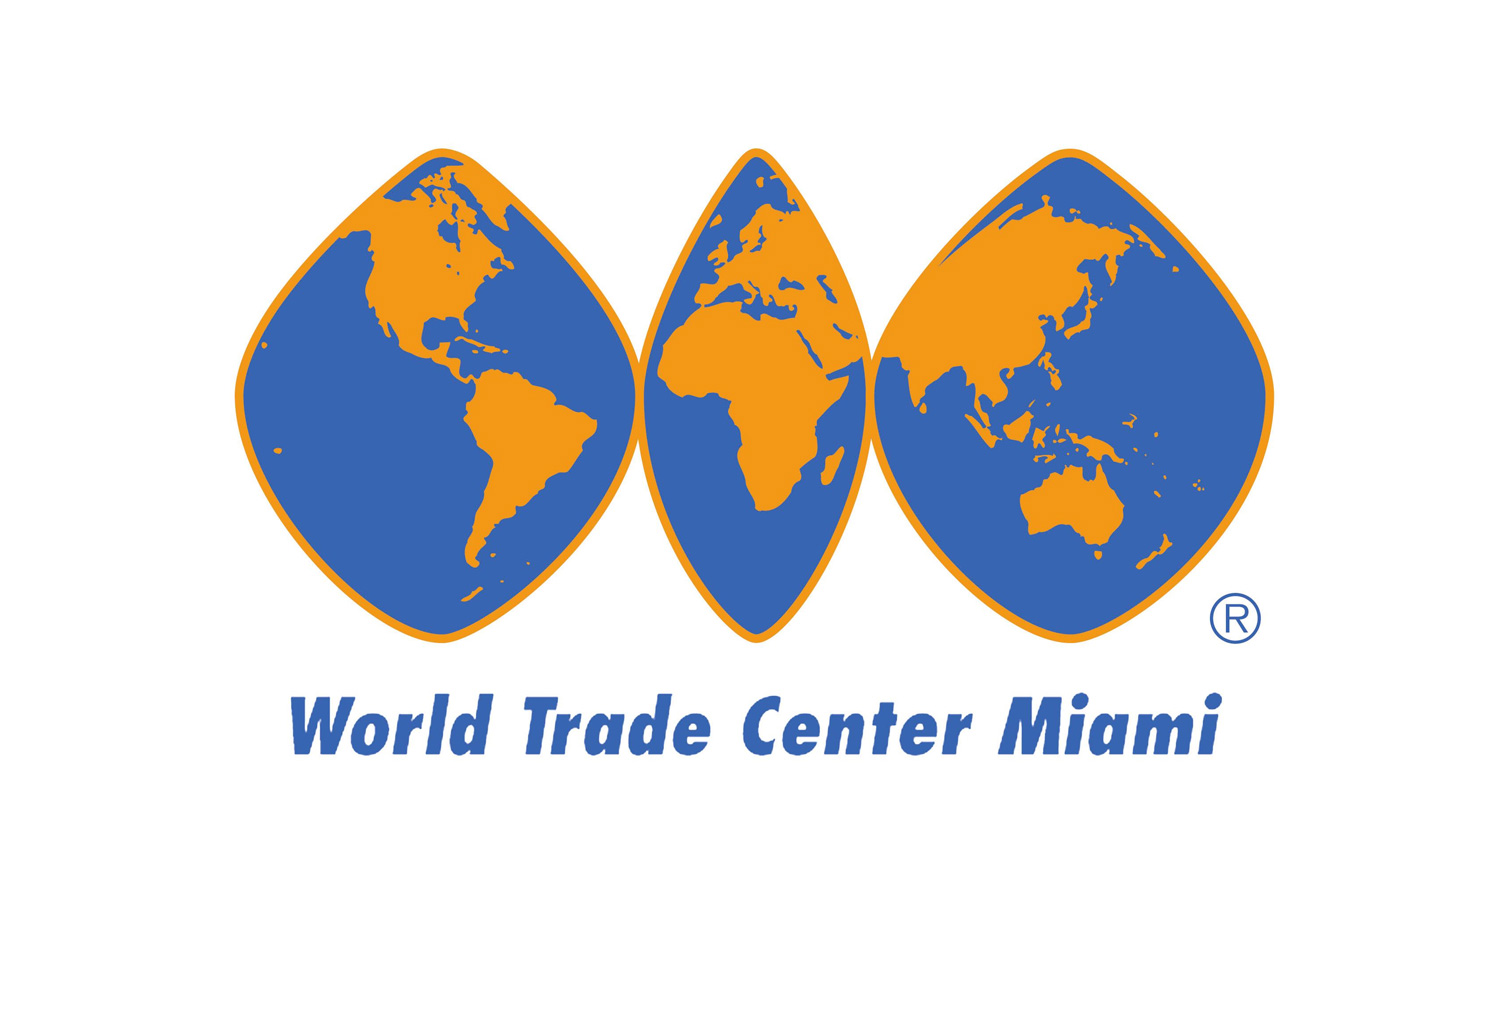 17TH INTERNATIONAL WOMEN'S DAY AWARDS LUNCHEON IN MIAMI, HONORS WOMEN LEADERS IN THE TRADE COMMUNITY